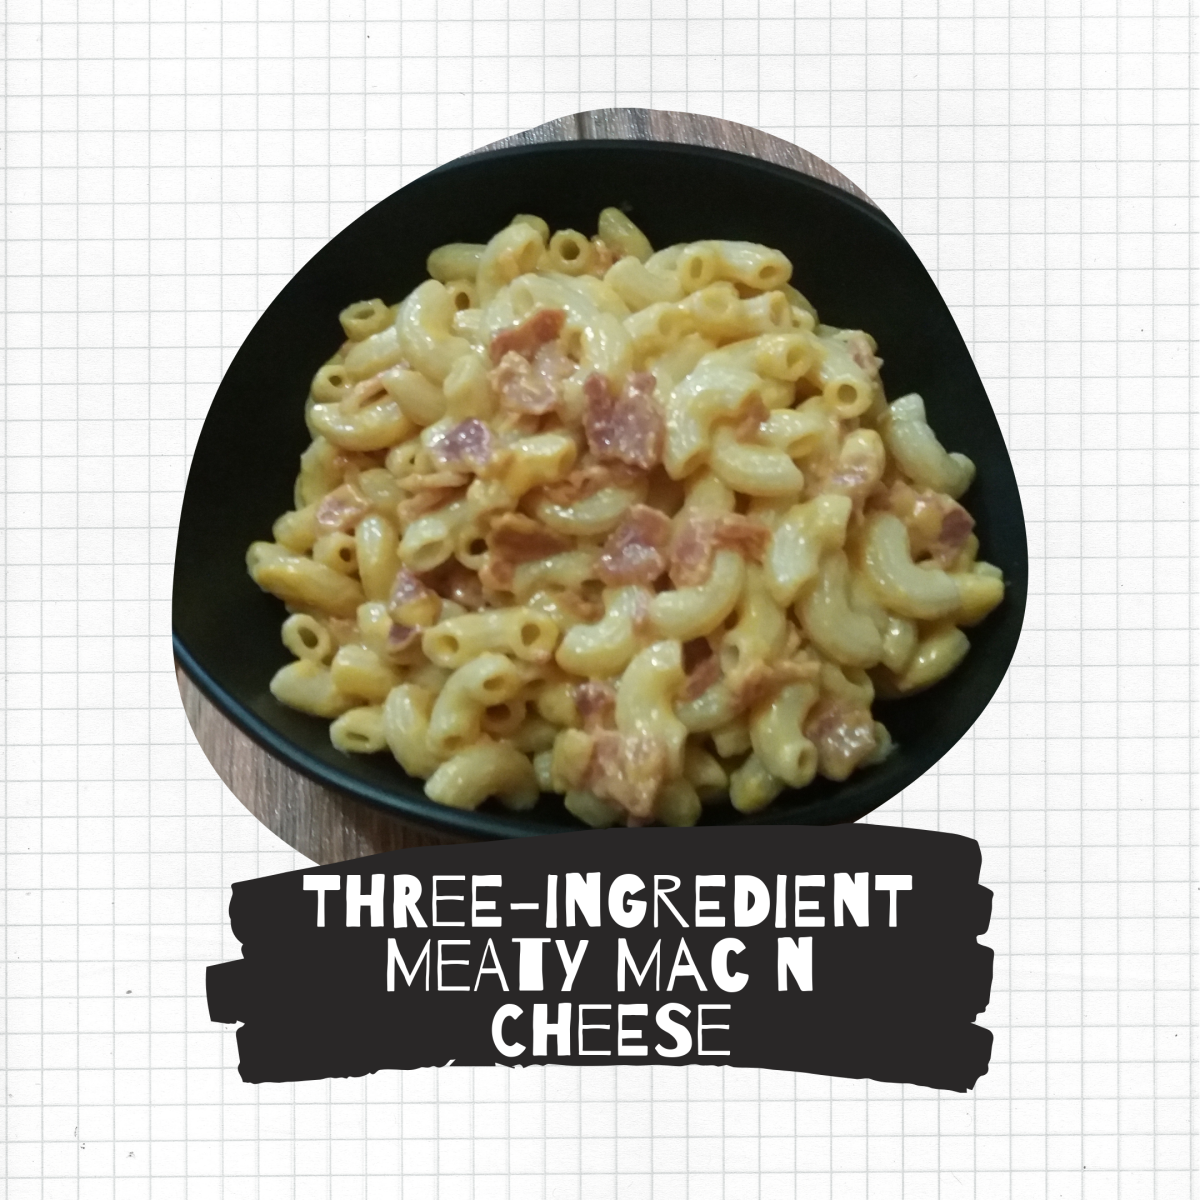 How to Cook Three-Ingredient Meaty Mac 'n' Cheese